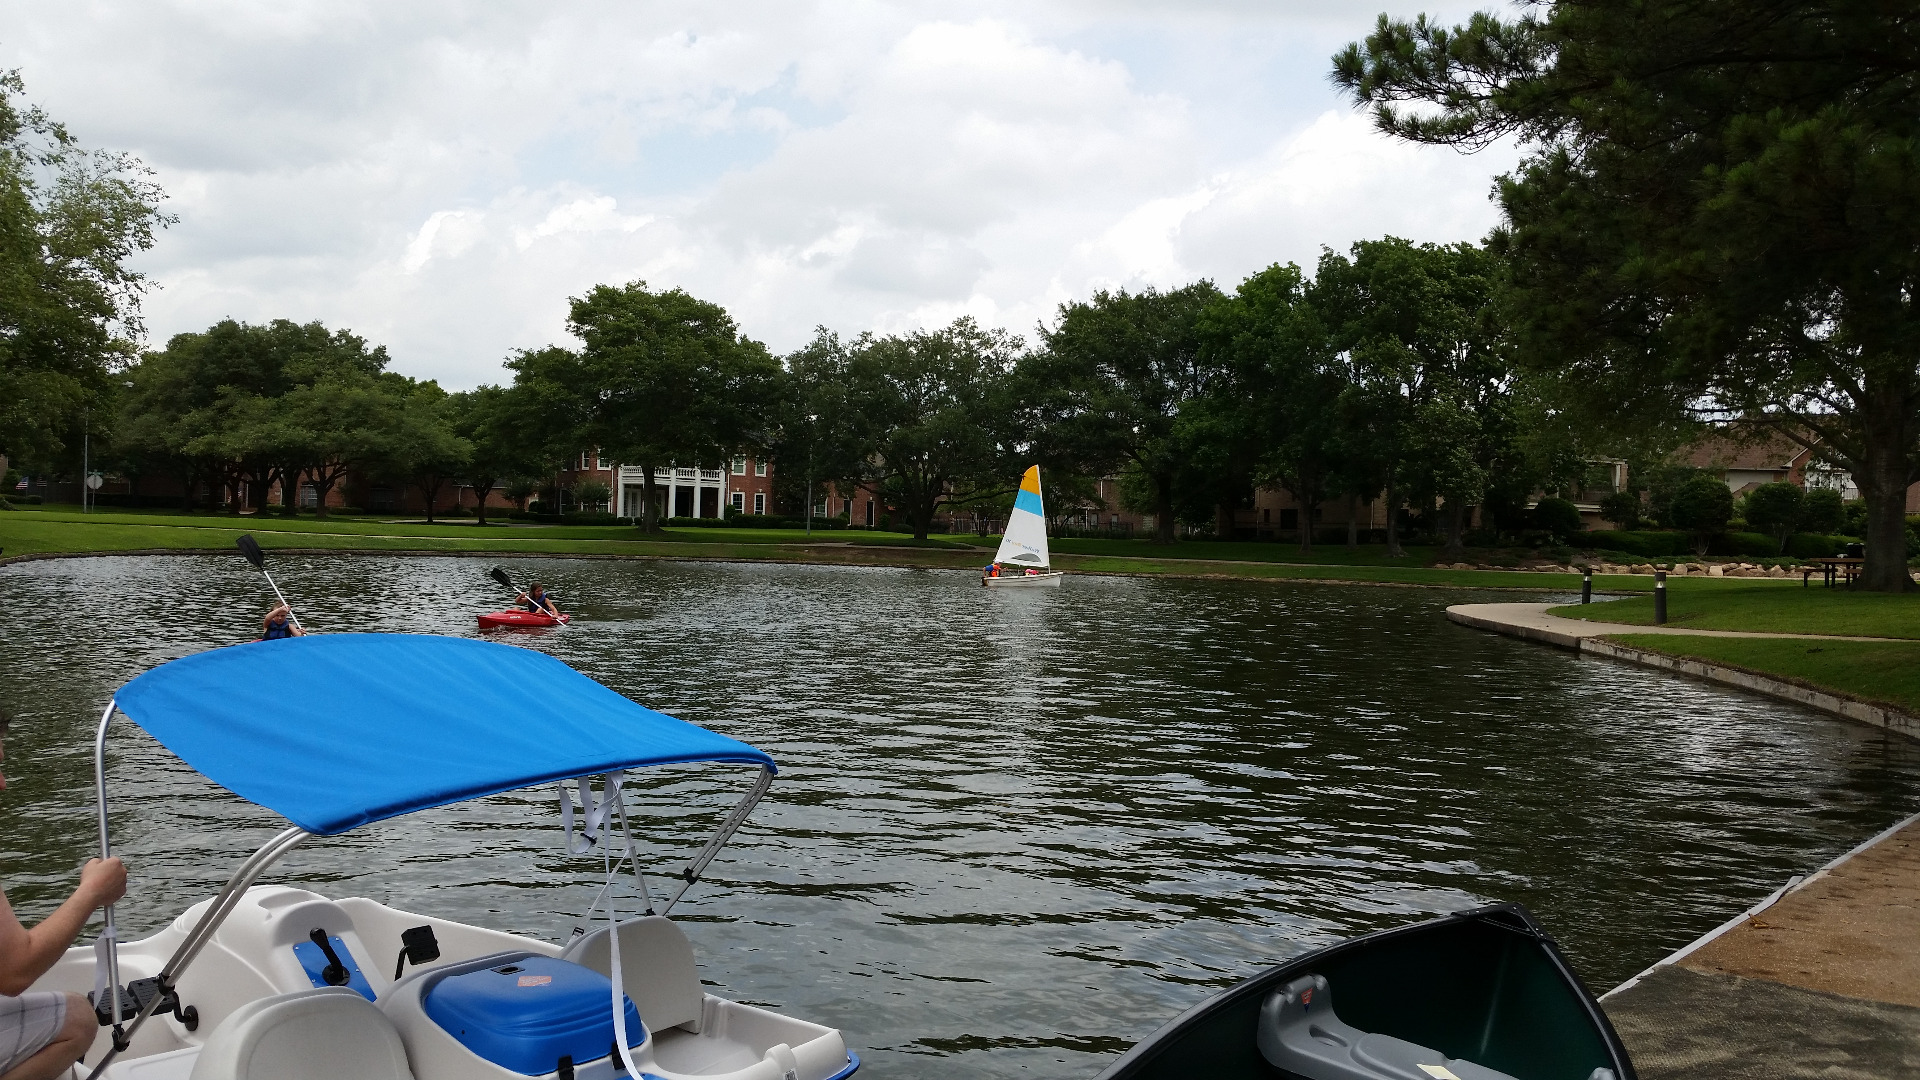 There are sail boats, paddle boats, Kayaks, Canoes. It's really a fun family activity. In the summer, if you do not have time to travel out of town or state, you can still have fun here with your family in the weekends.